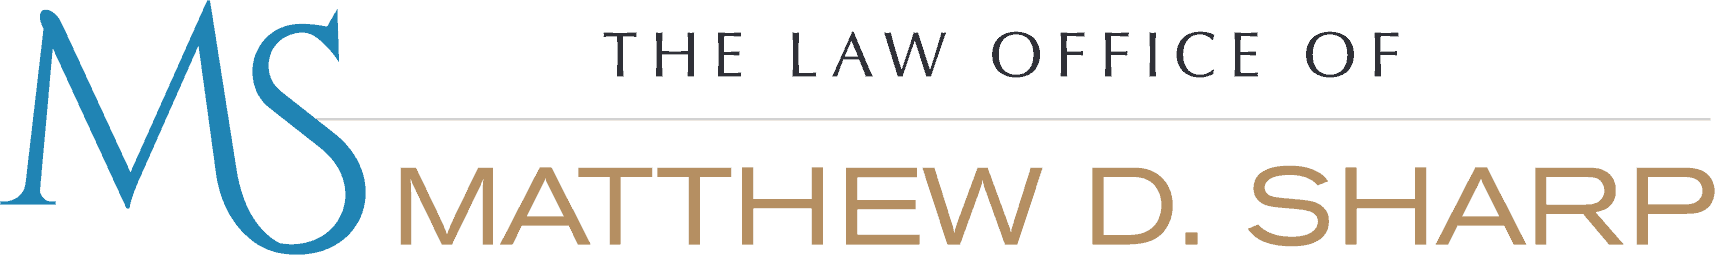 The Law Office of Matthew D. Sharp